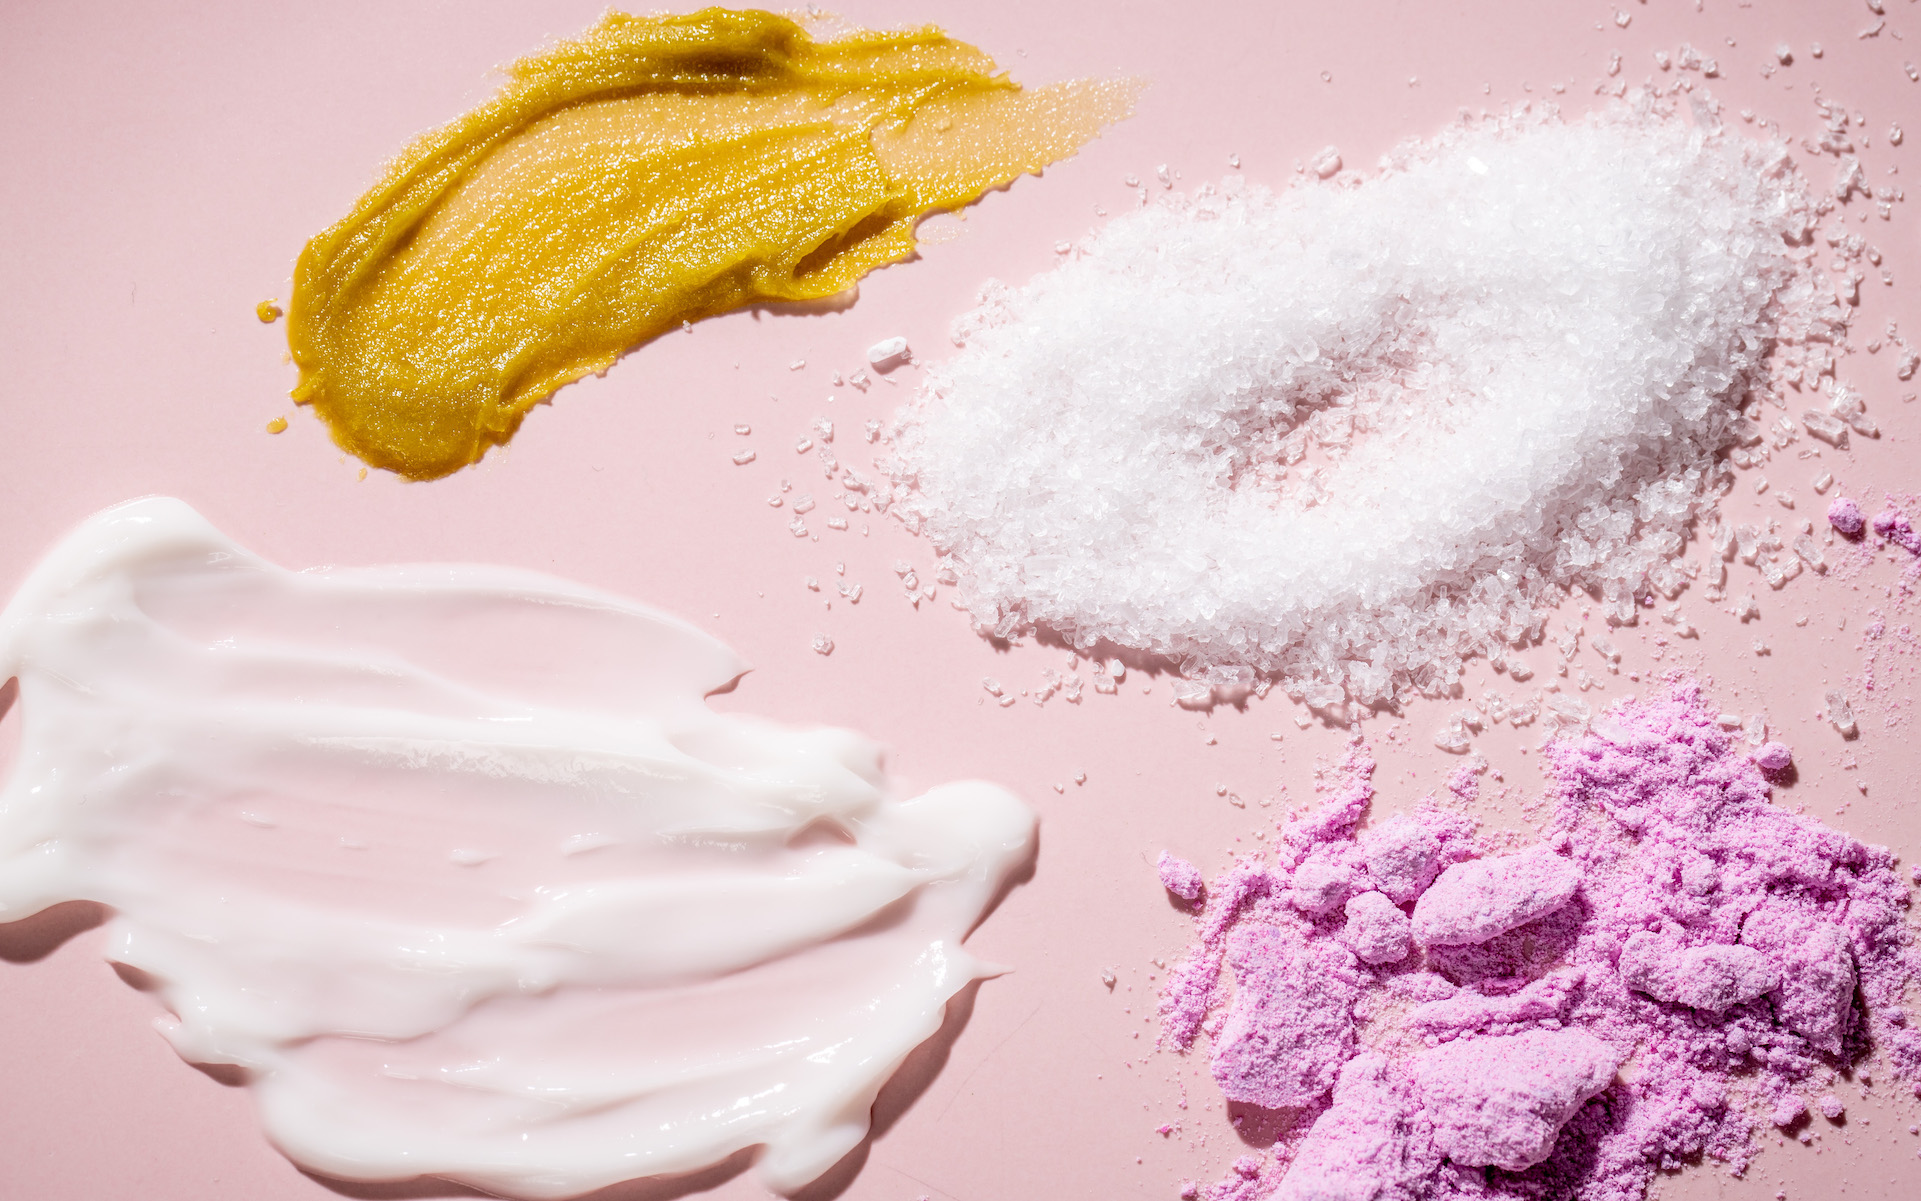 Types of topicals, cream, bath products, lube,